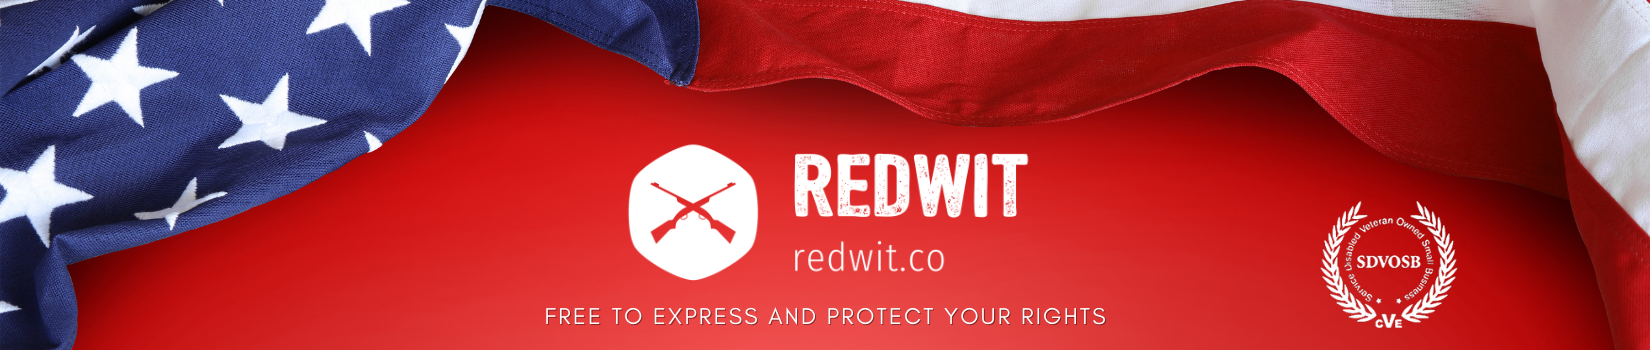 Redwit - Veteran Owned and Operated - Free to Express and Protect